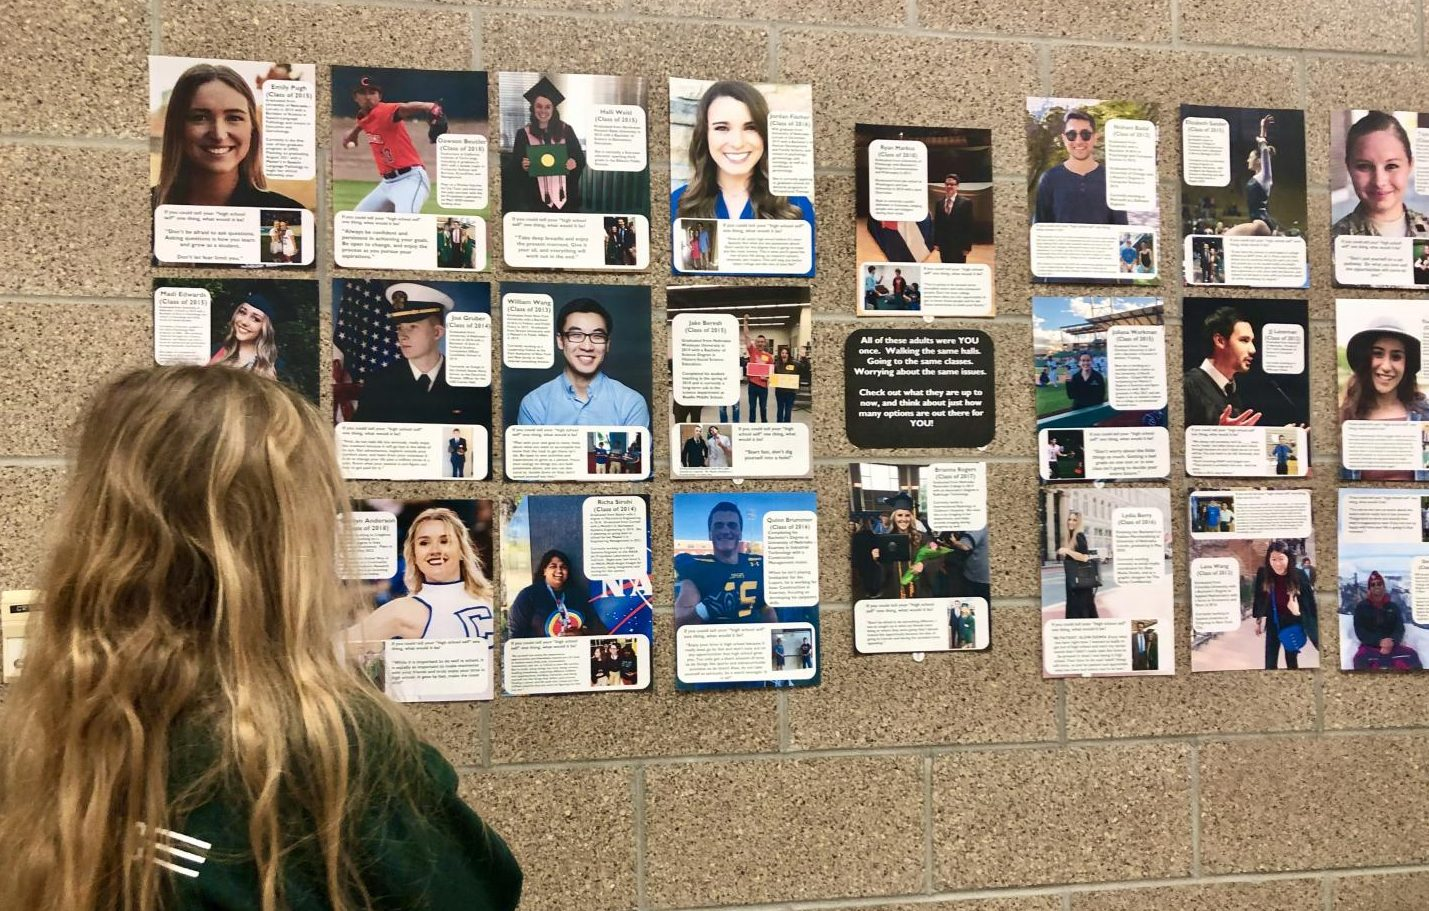 """The alumni display hangs next to room 203. Social Studies teacher Tim Royers intends to cover the entire wall by the end of the year. """"I'll keep expanding as much as I can,"""" Royers said. """"I figure the more examples the better."""""""